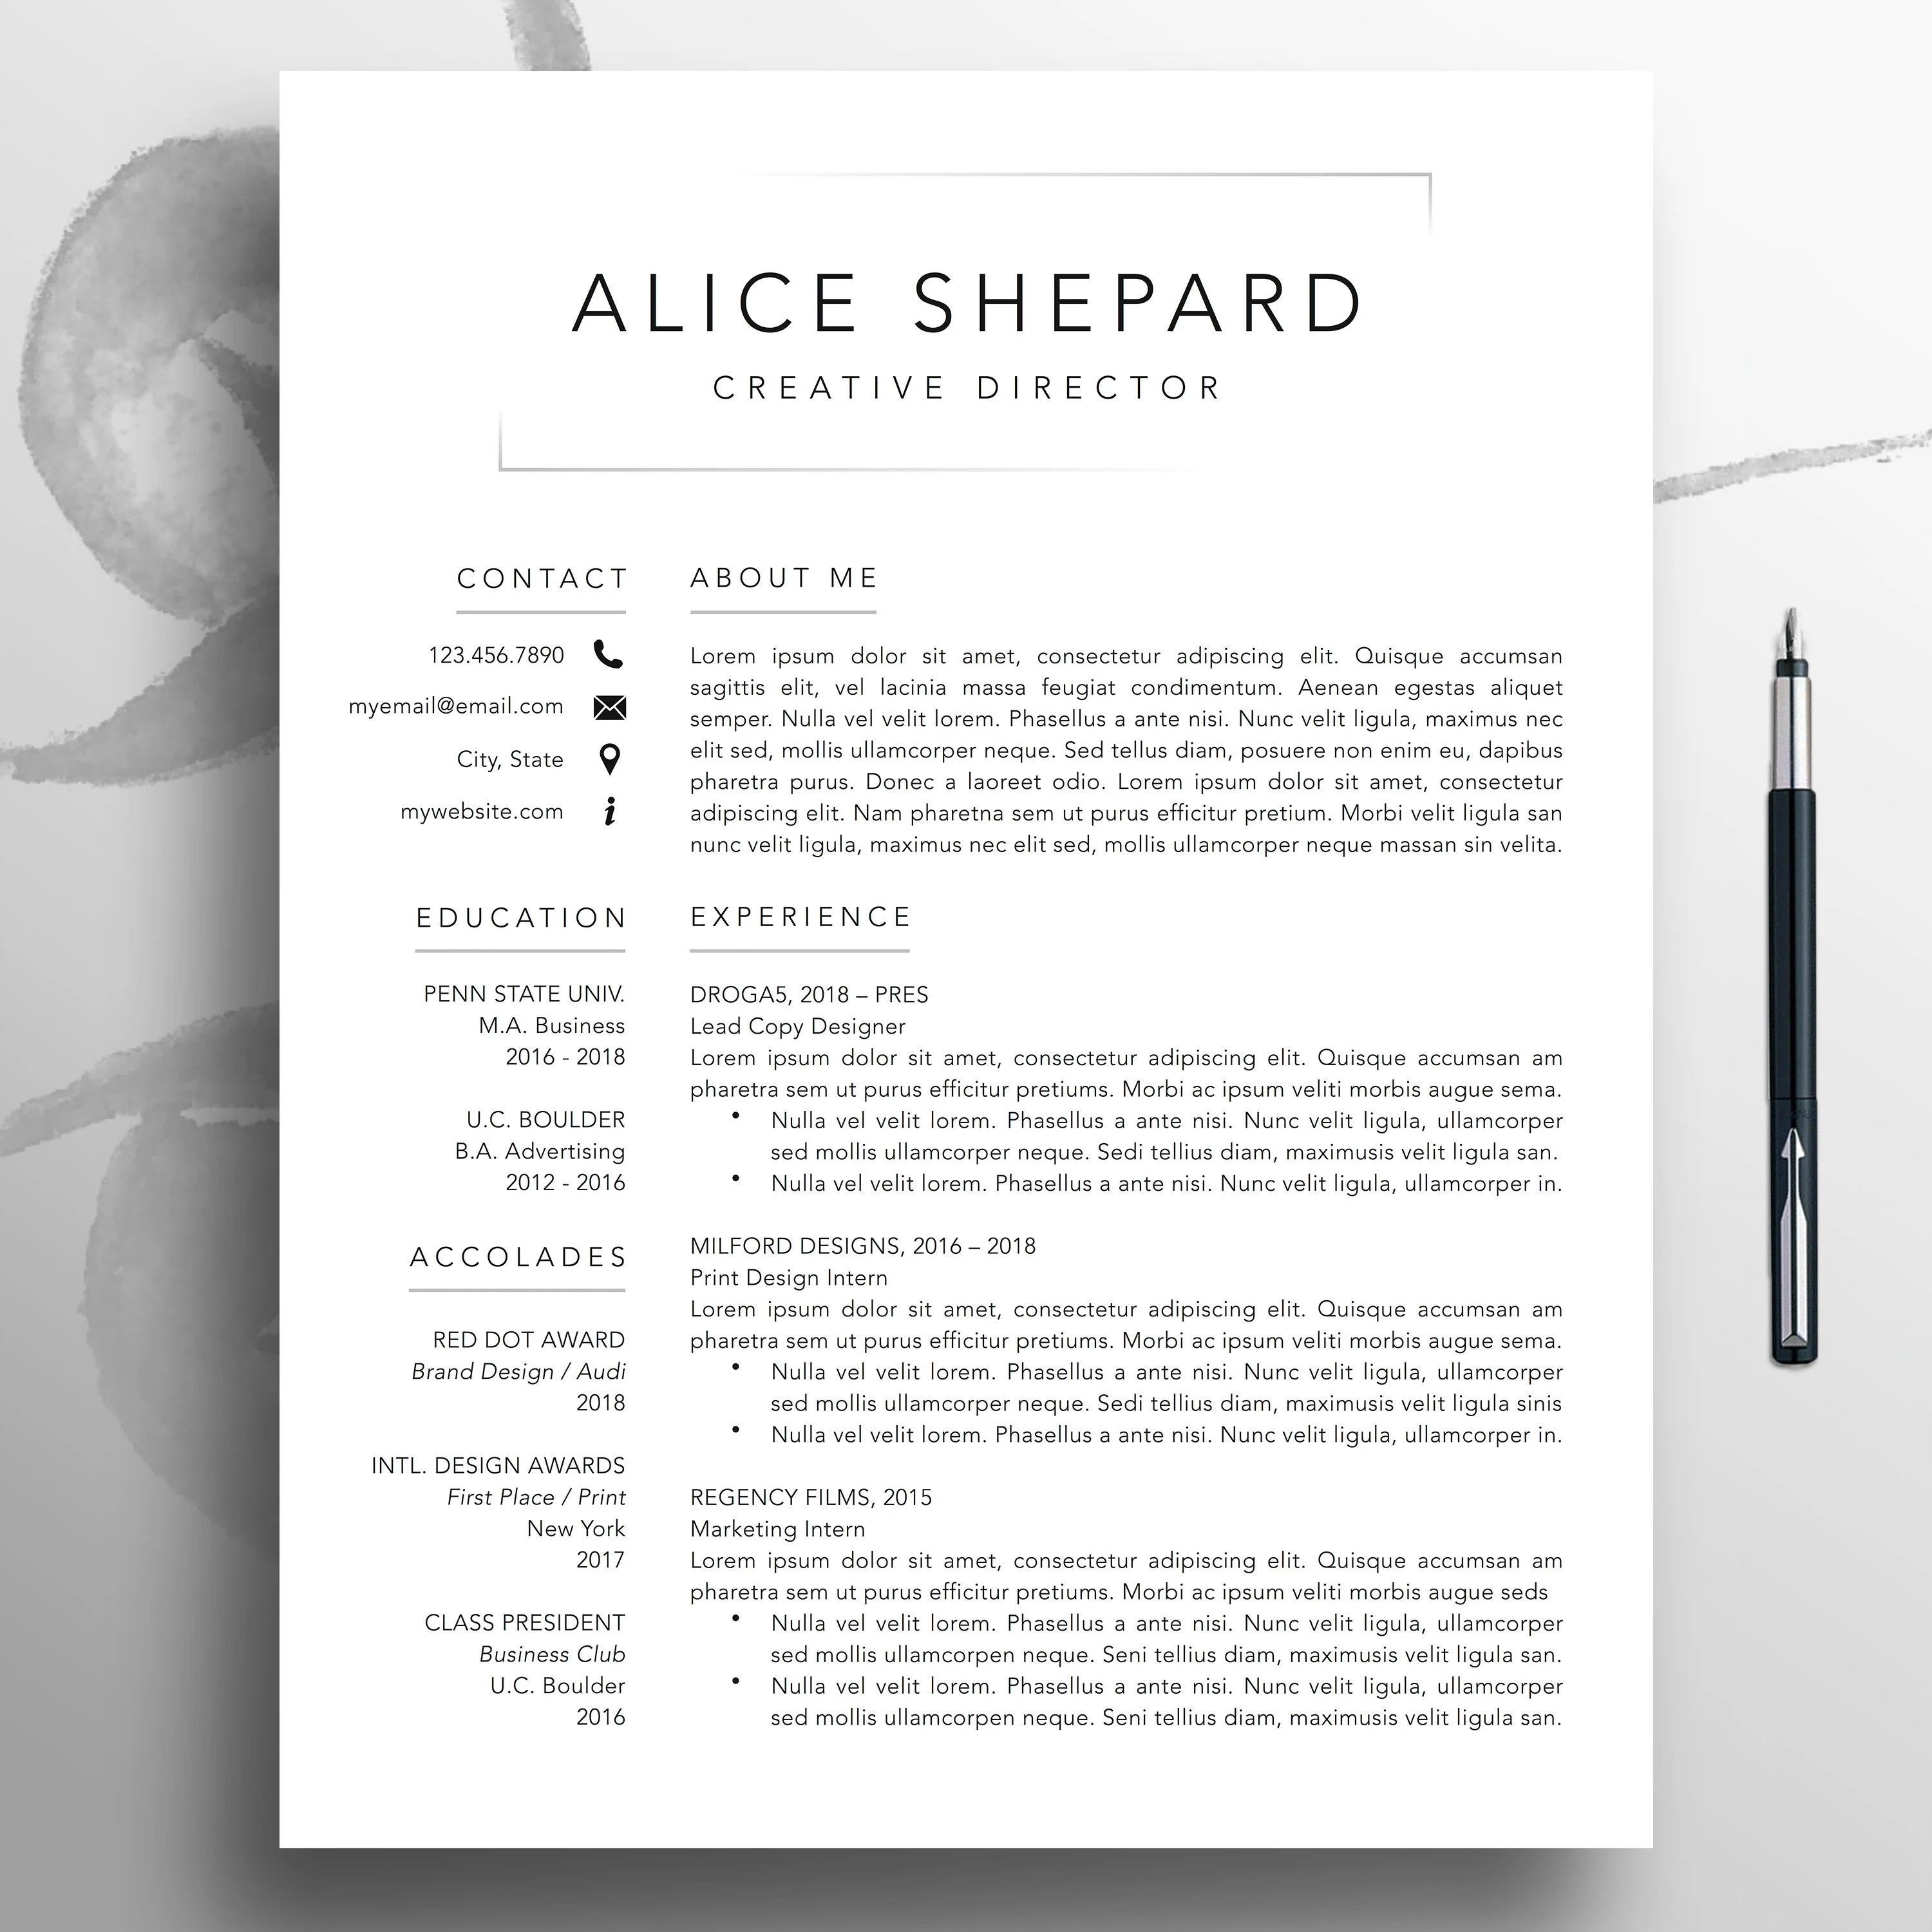 Pages Templates Resume Modern Resume Cv Template 1 3 Page Template Professional Resume Template Mac Pages Creative Resume Template Word Resume Download Alice